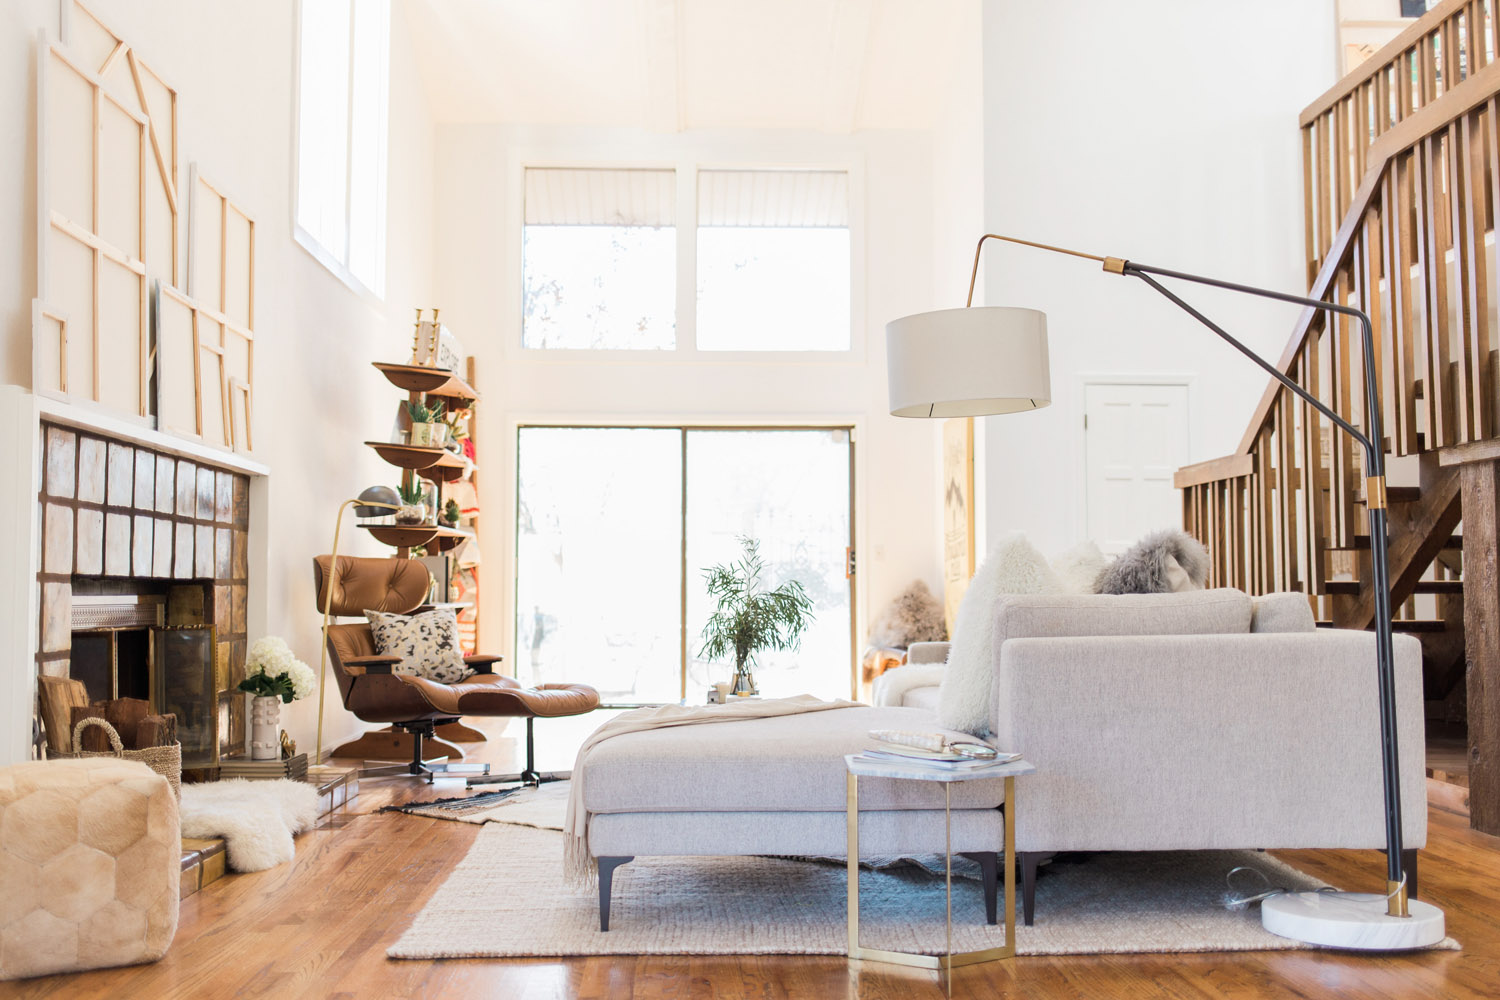 West Elm Offers 15% Off To Military Personnel